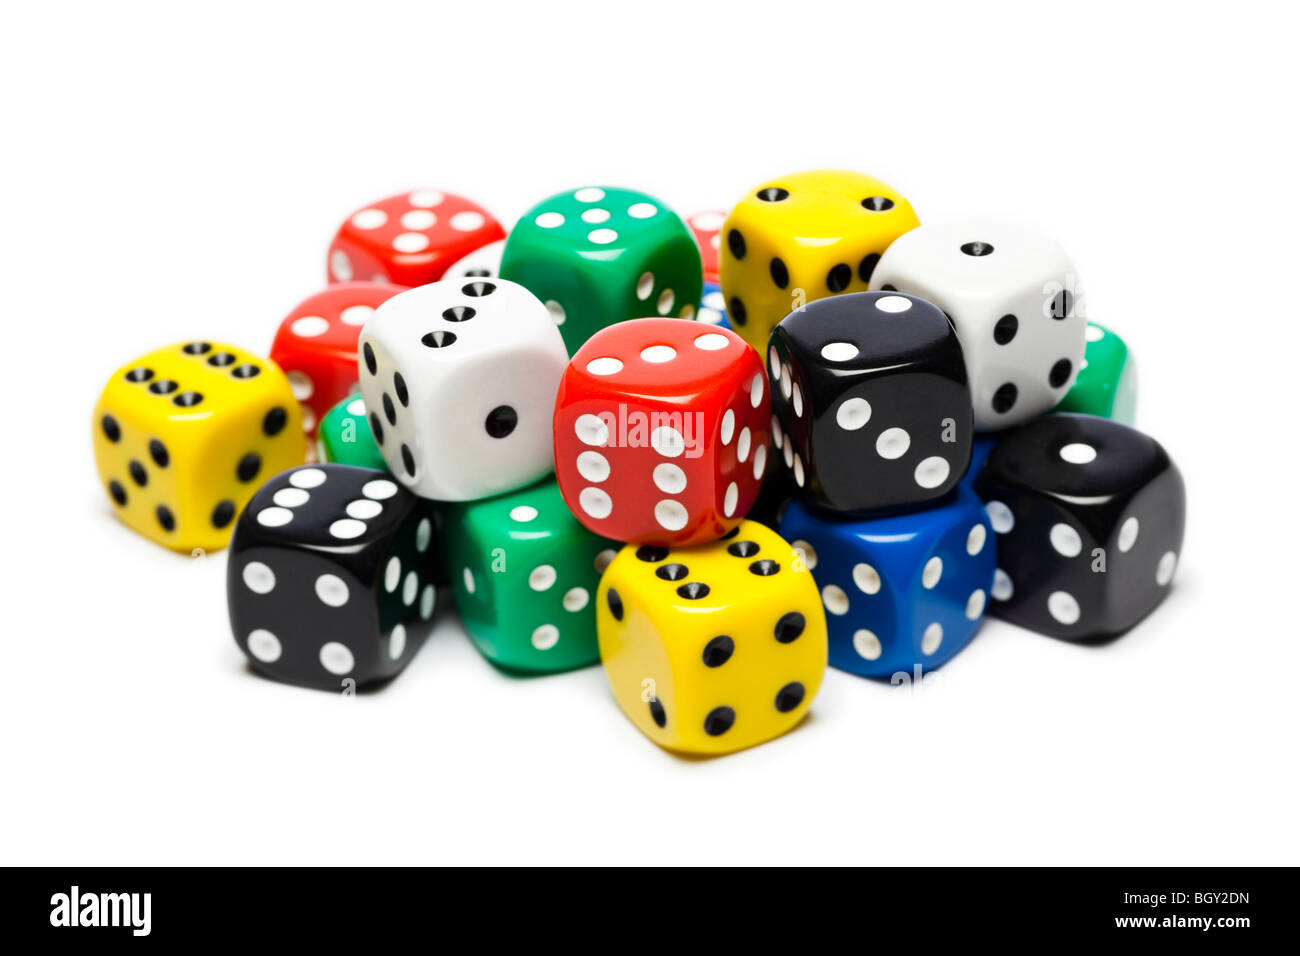 Dice pile - studio cut out on white background - Stock Image